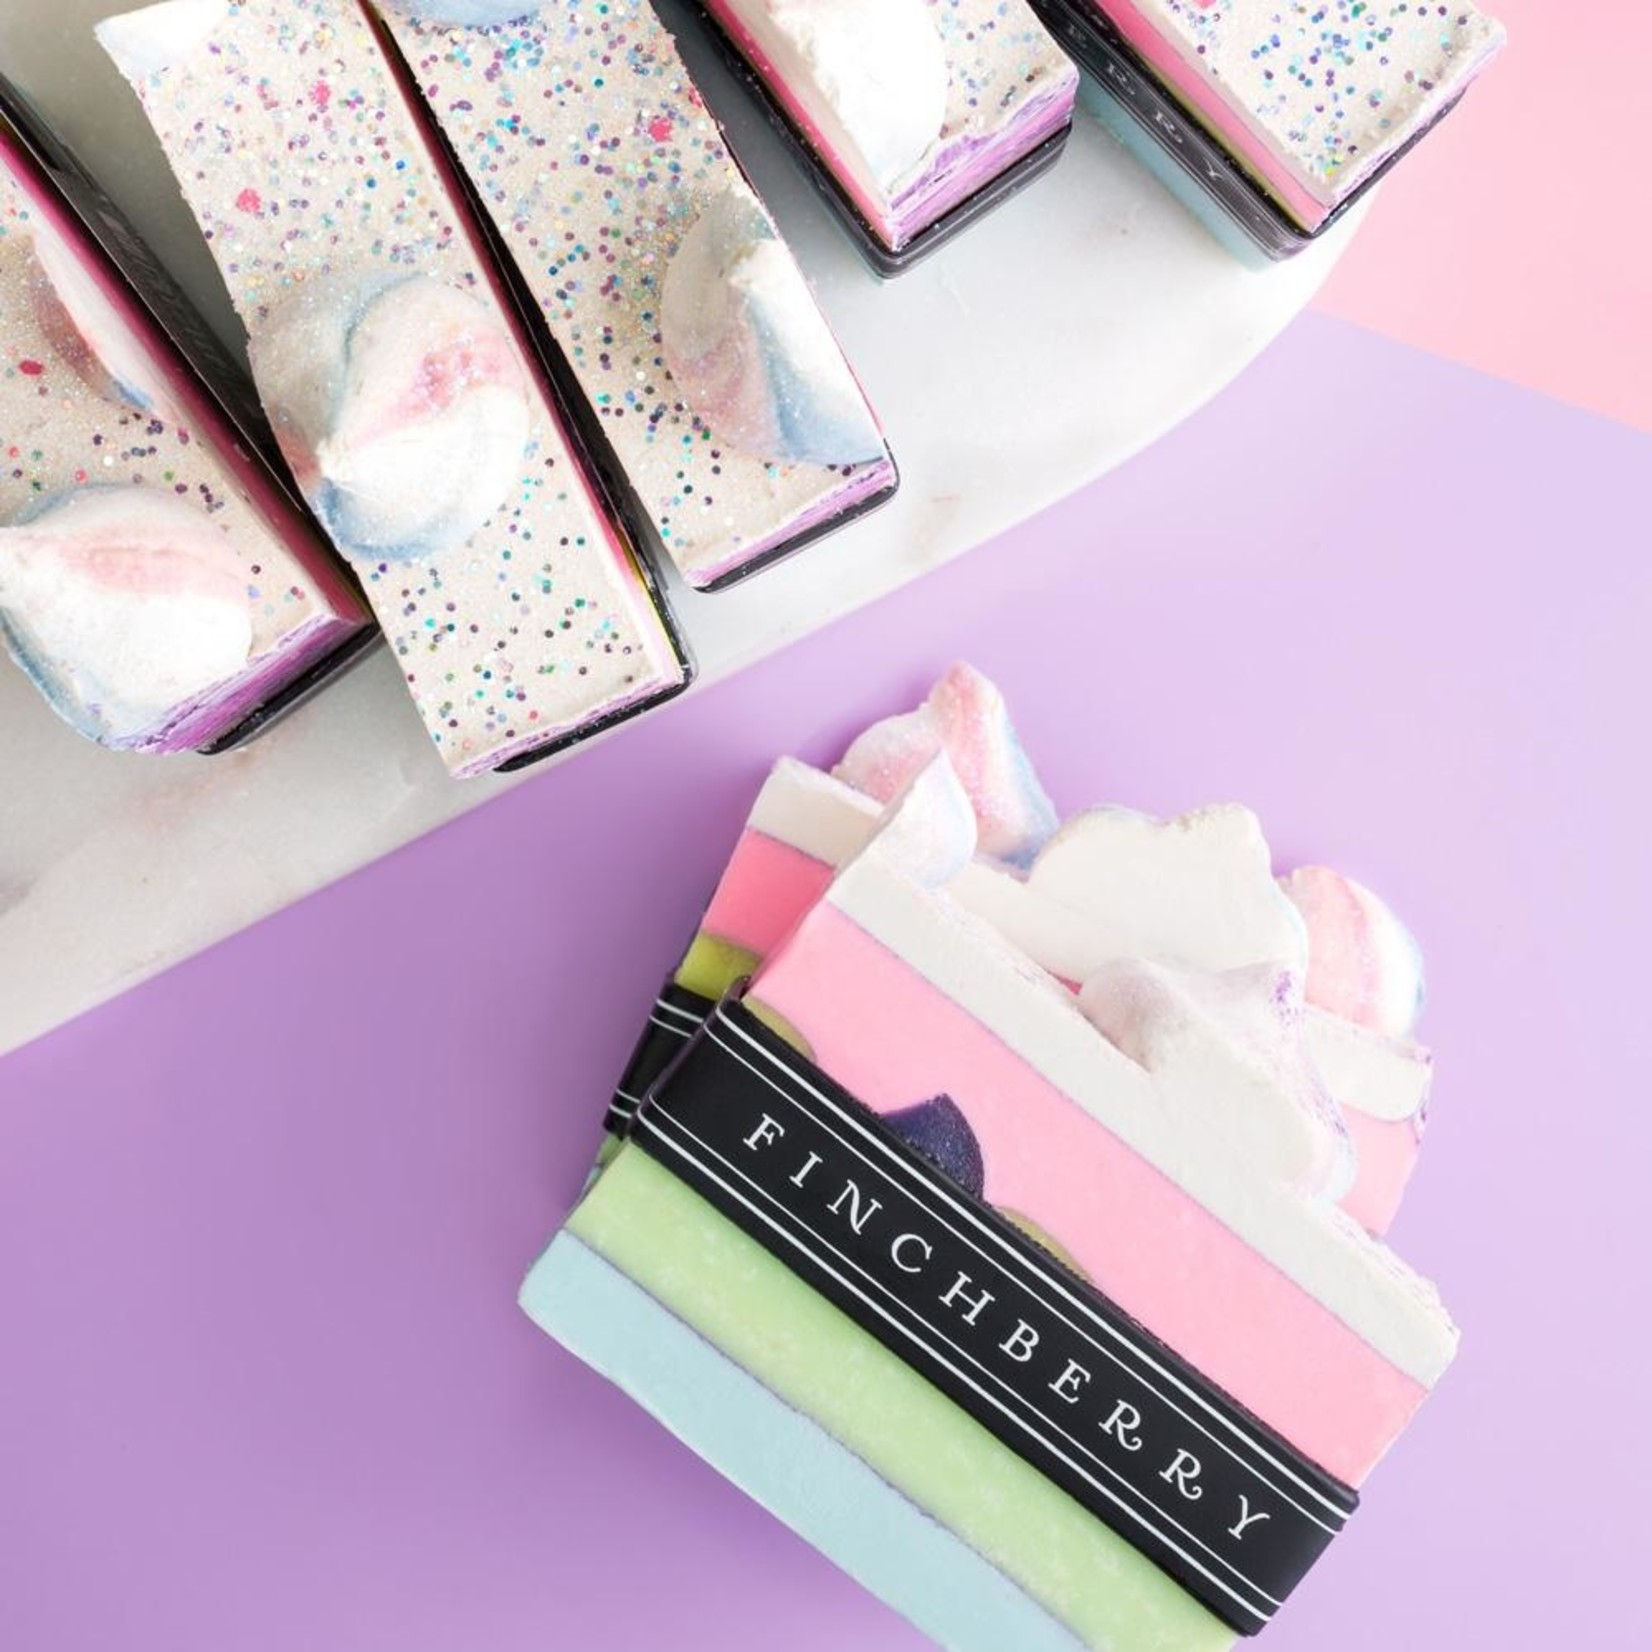 FinchBerry Soapery Darling - Handcrafted Vegan Soap